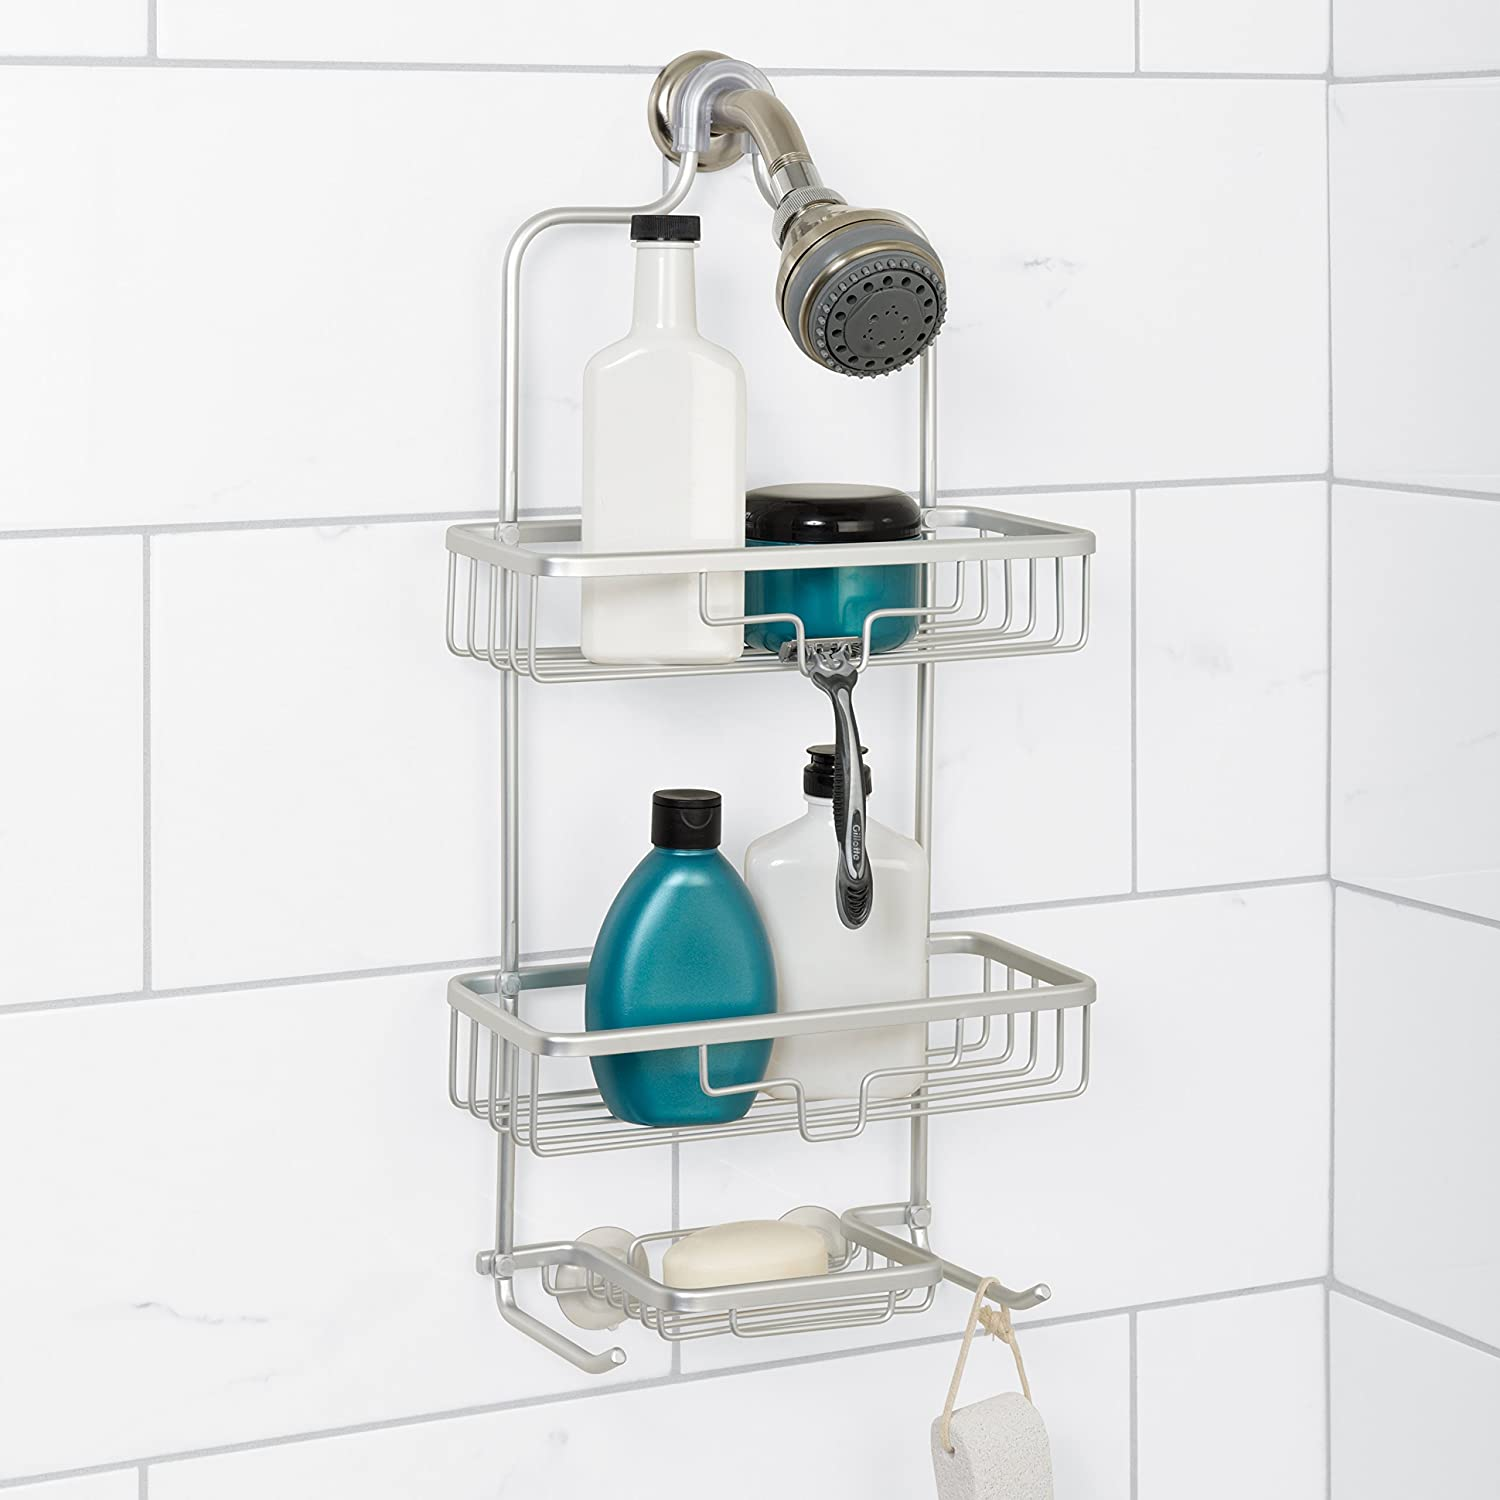 simple shelves as etc for bath conditioner such storing shampoo practical built soap in of supplies way shower hair the